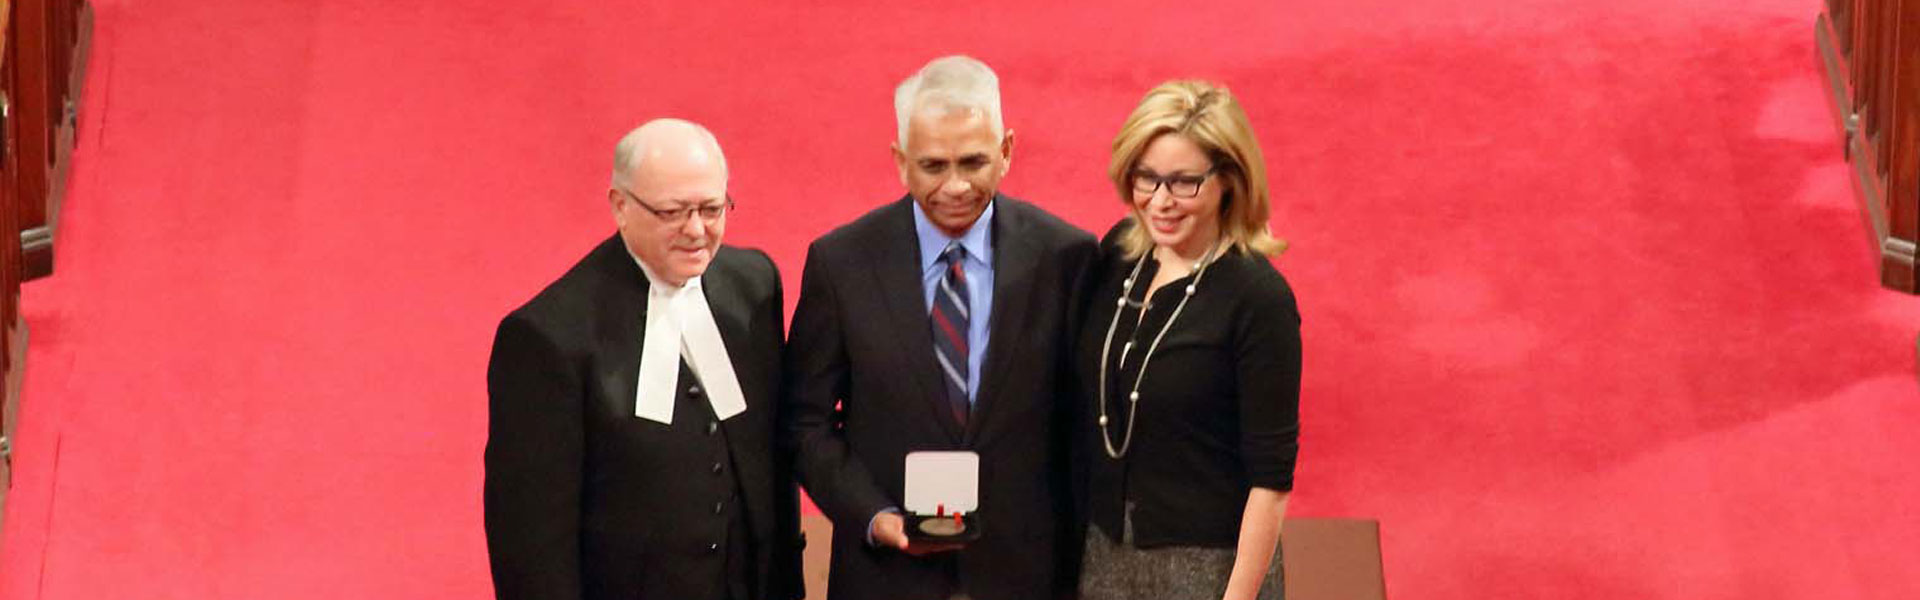 Salim Mansur, Associate Professor in the Department of Political Science, was awarded a Senate 150th Anniversary Medal for his work to promote interfaith understanding.